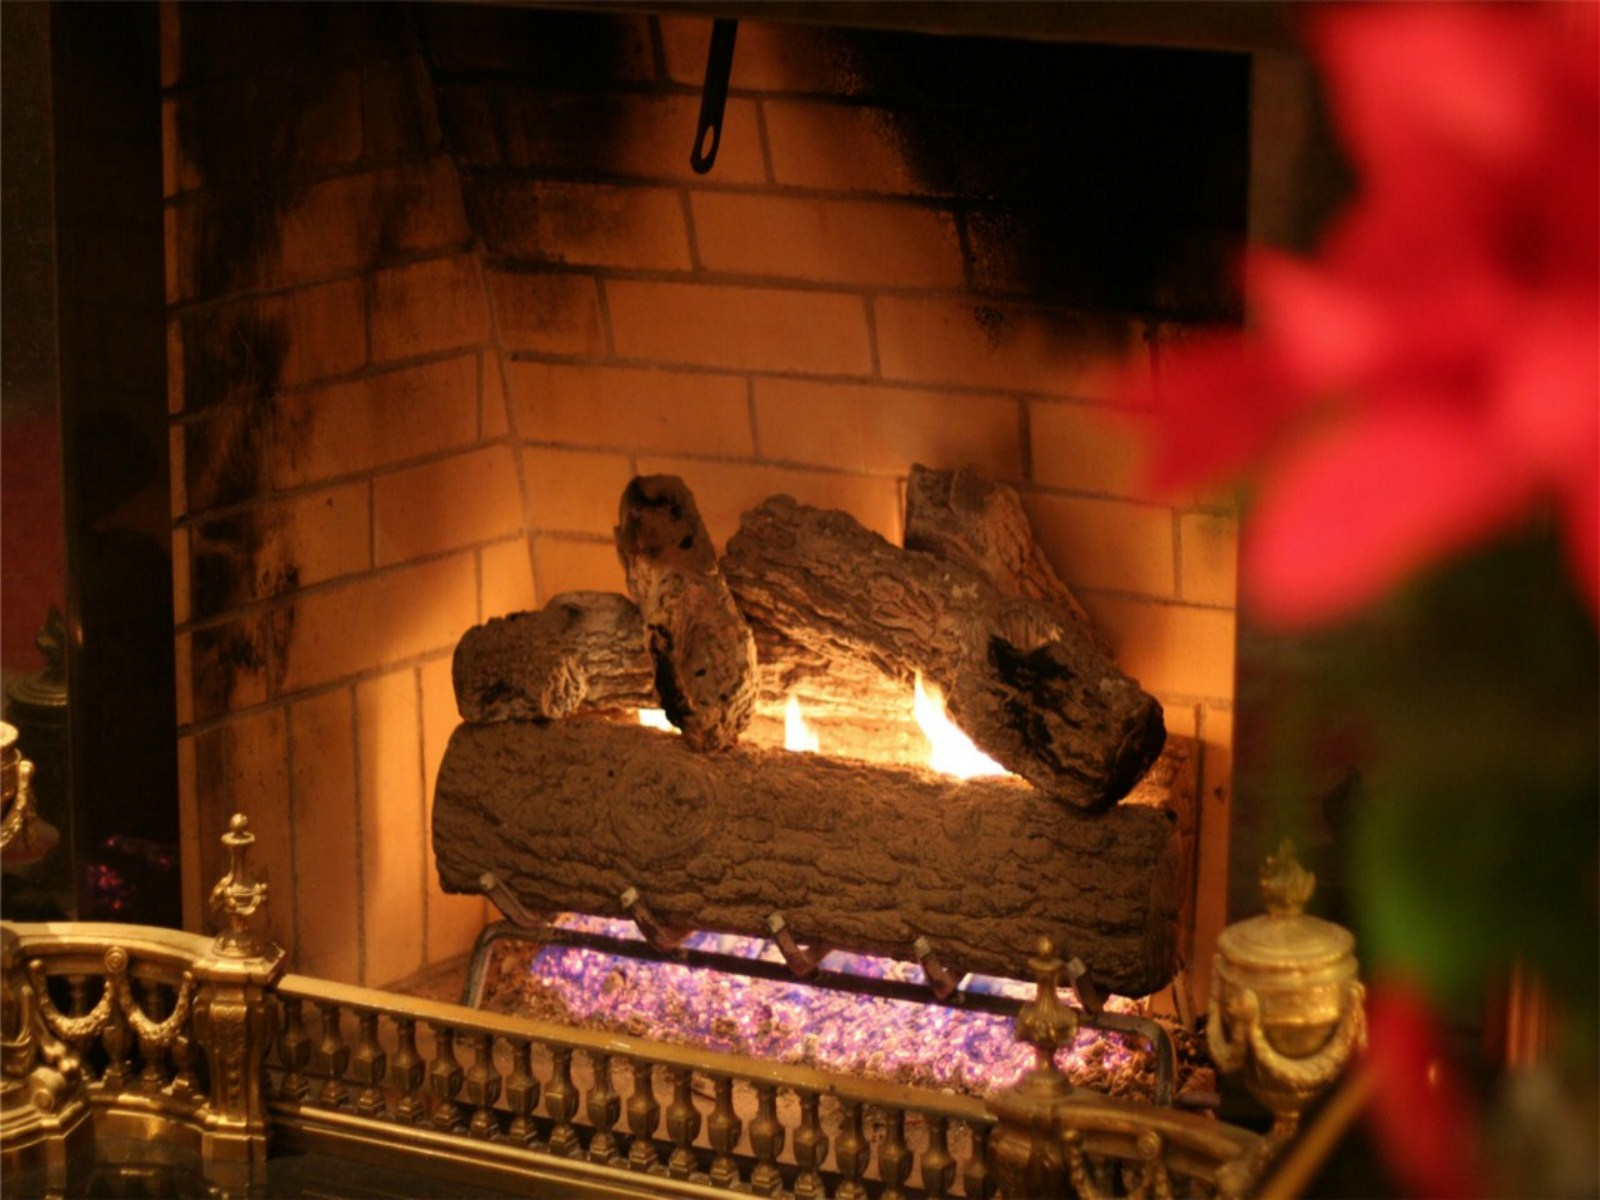 Live Fireplace Wallpaper For Pc Christmas Fireplace Wallpaper 1600x1200